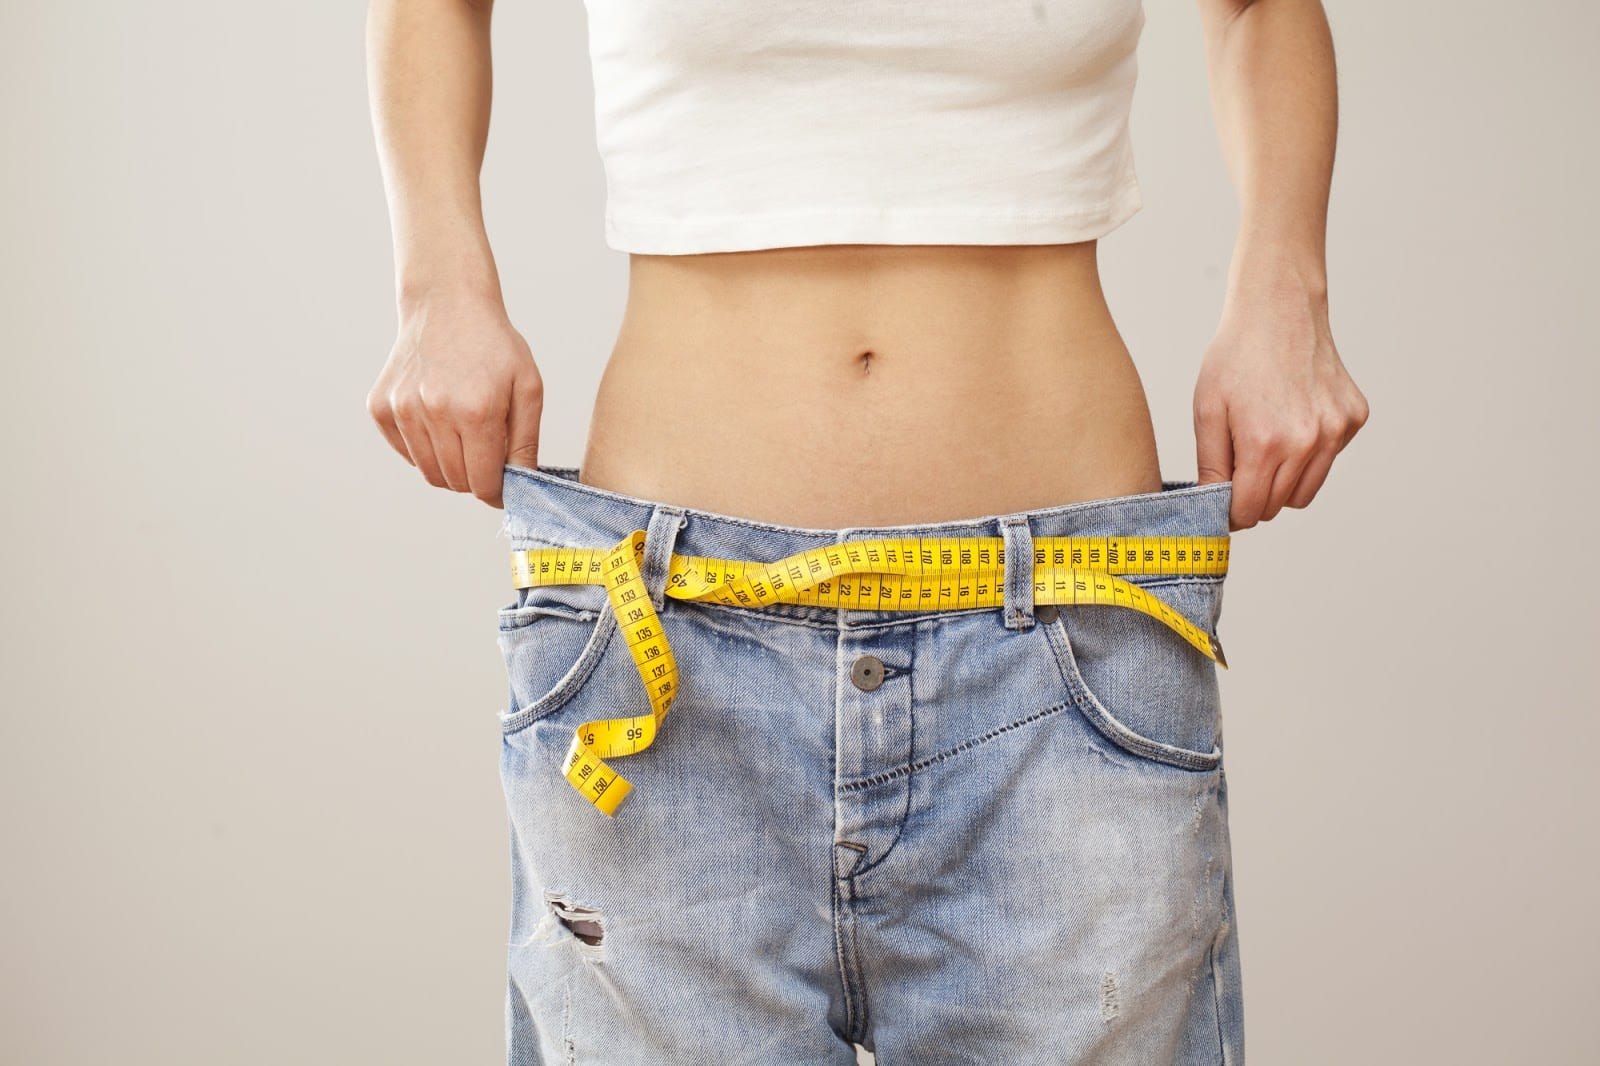 Garcinia Cambogia Weight Loss Results: What's the Verdict?